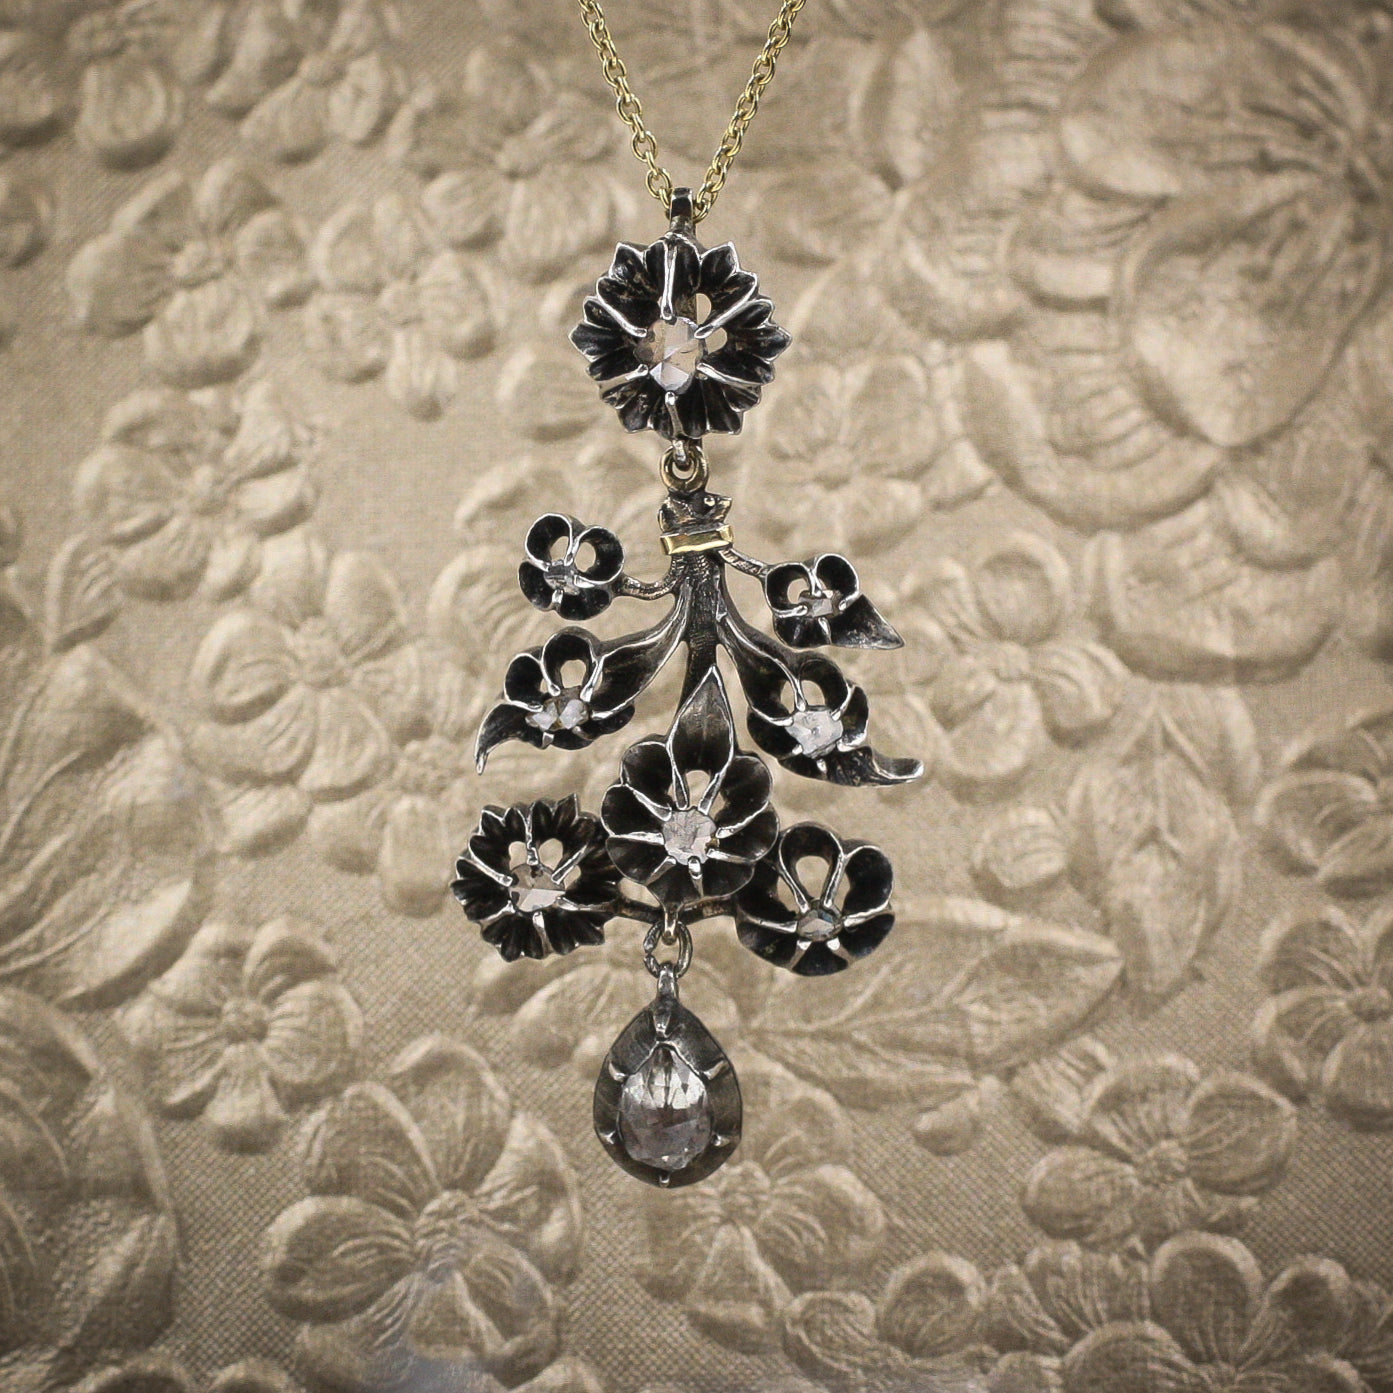 Starry Floral Rose-cut Diamond Pendant c1850